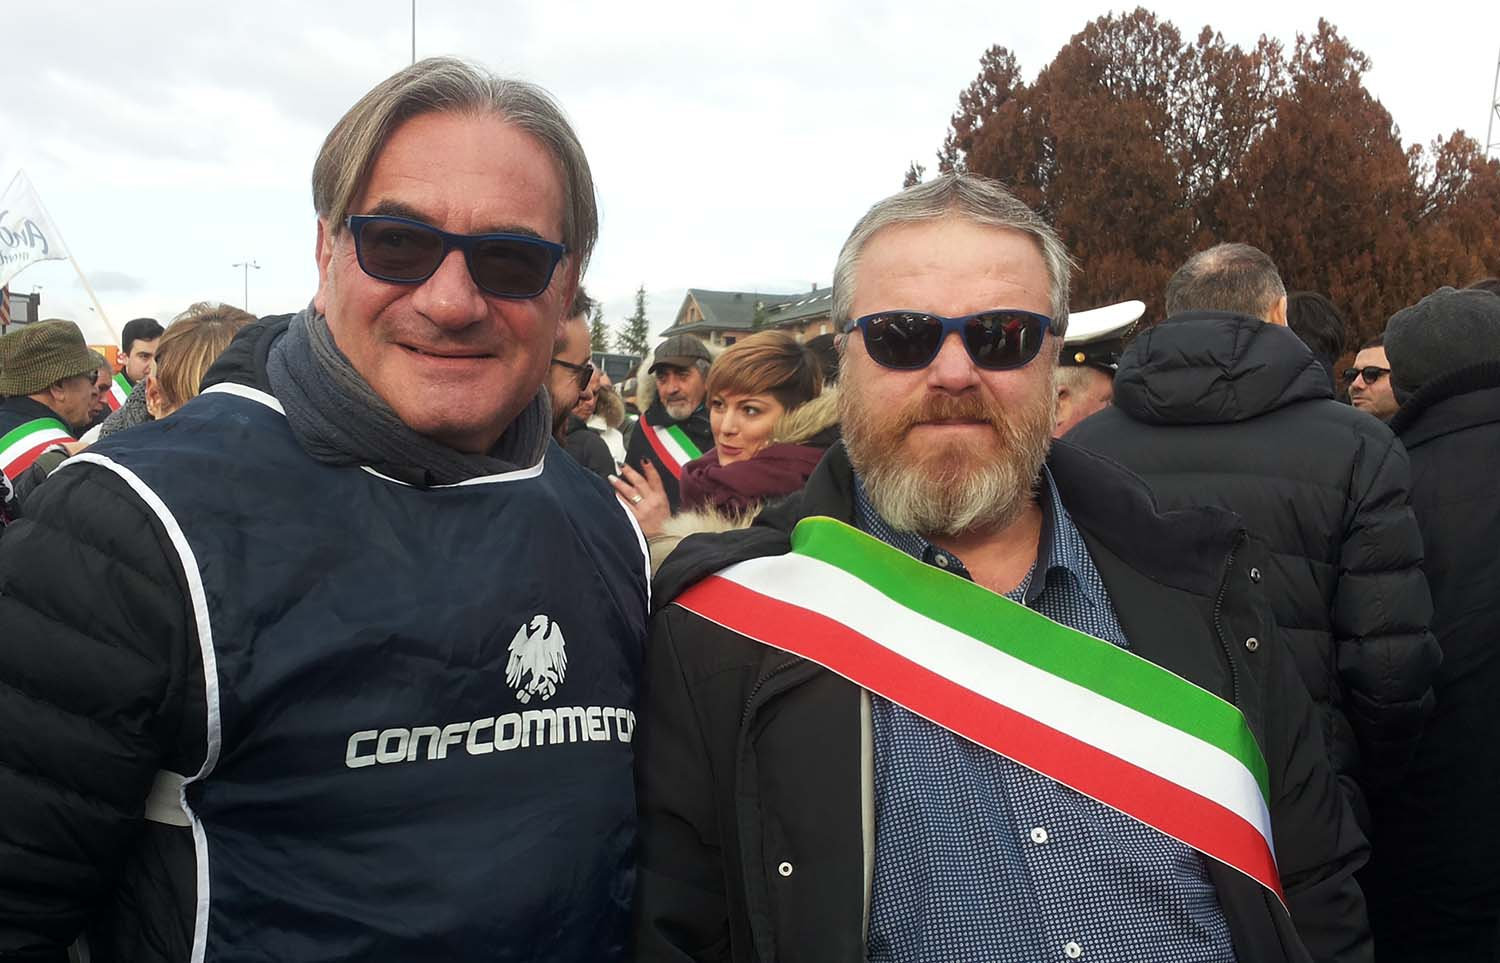 A sinistra, Celso Cioni